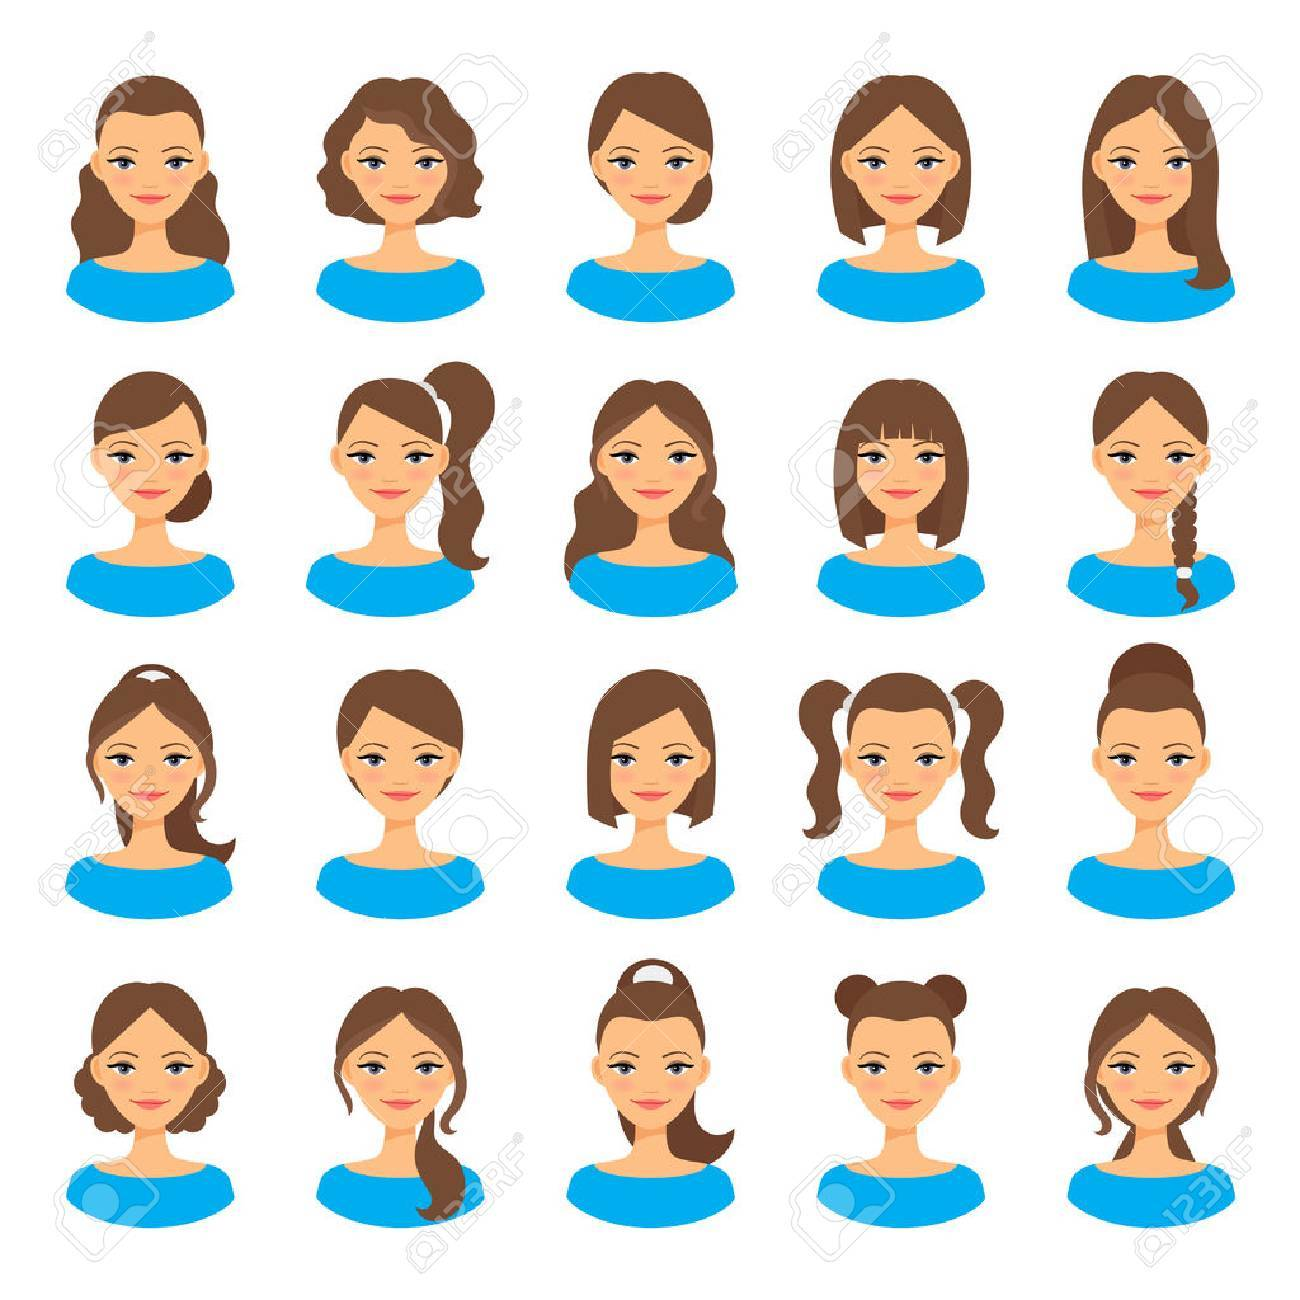 Womens Hairstyles Young Woman With Various Hair Styles Illustration